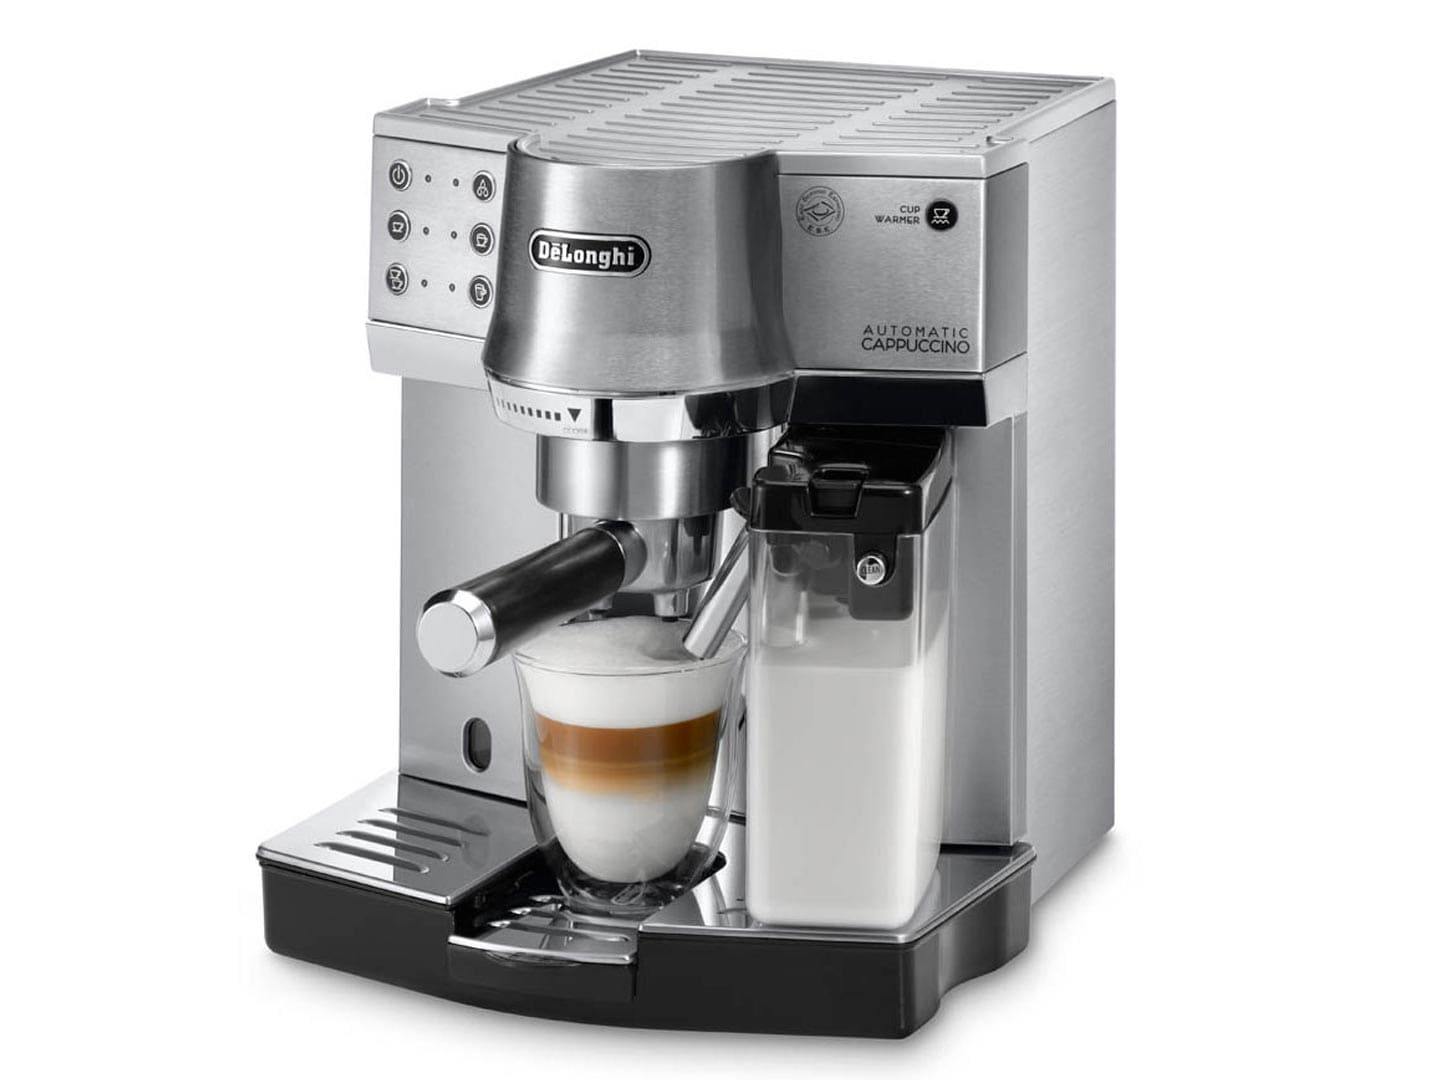 EC860M silver pump coffee machine - espresso coffee machine delonghi australia frothing milk